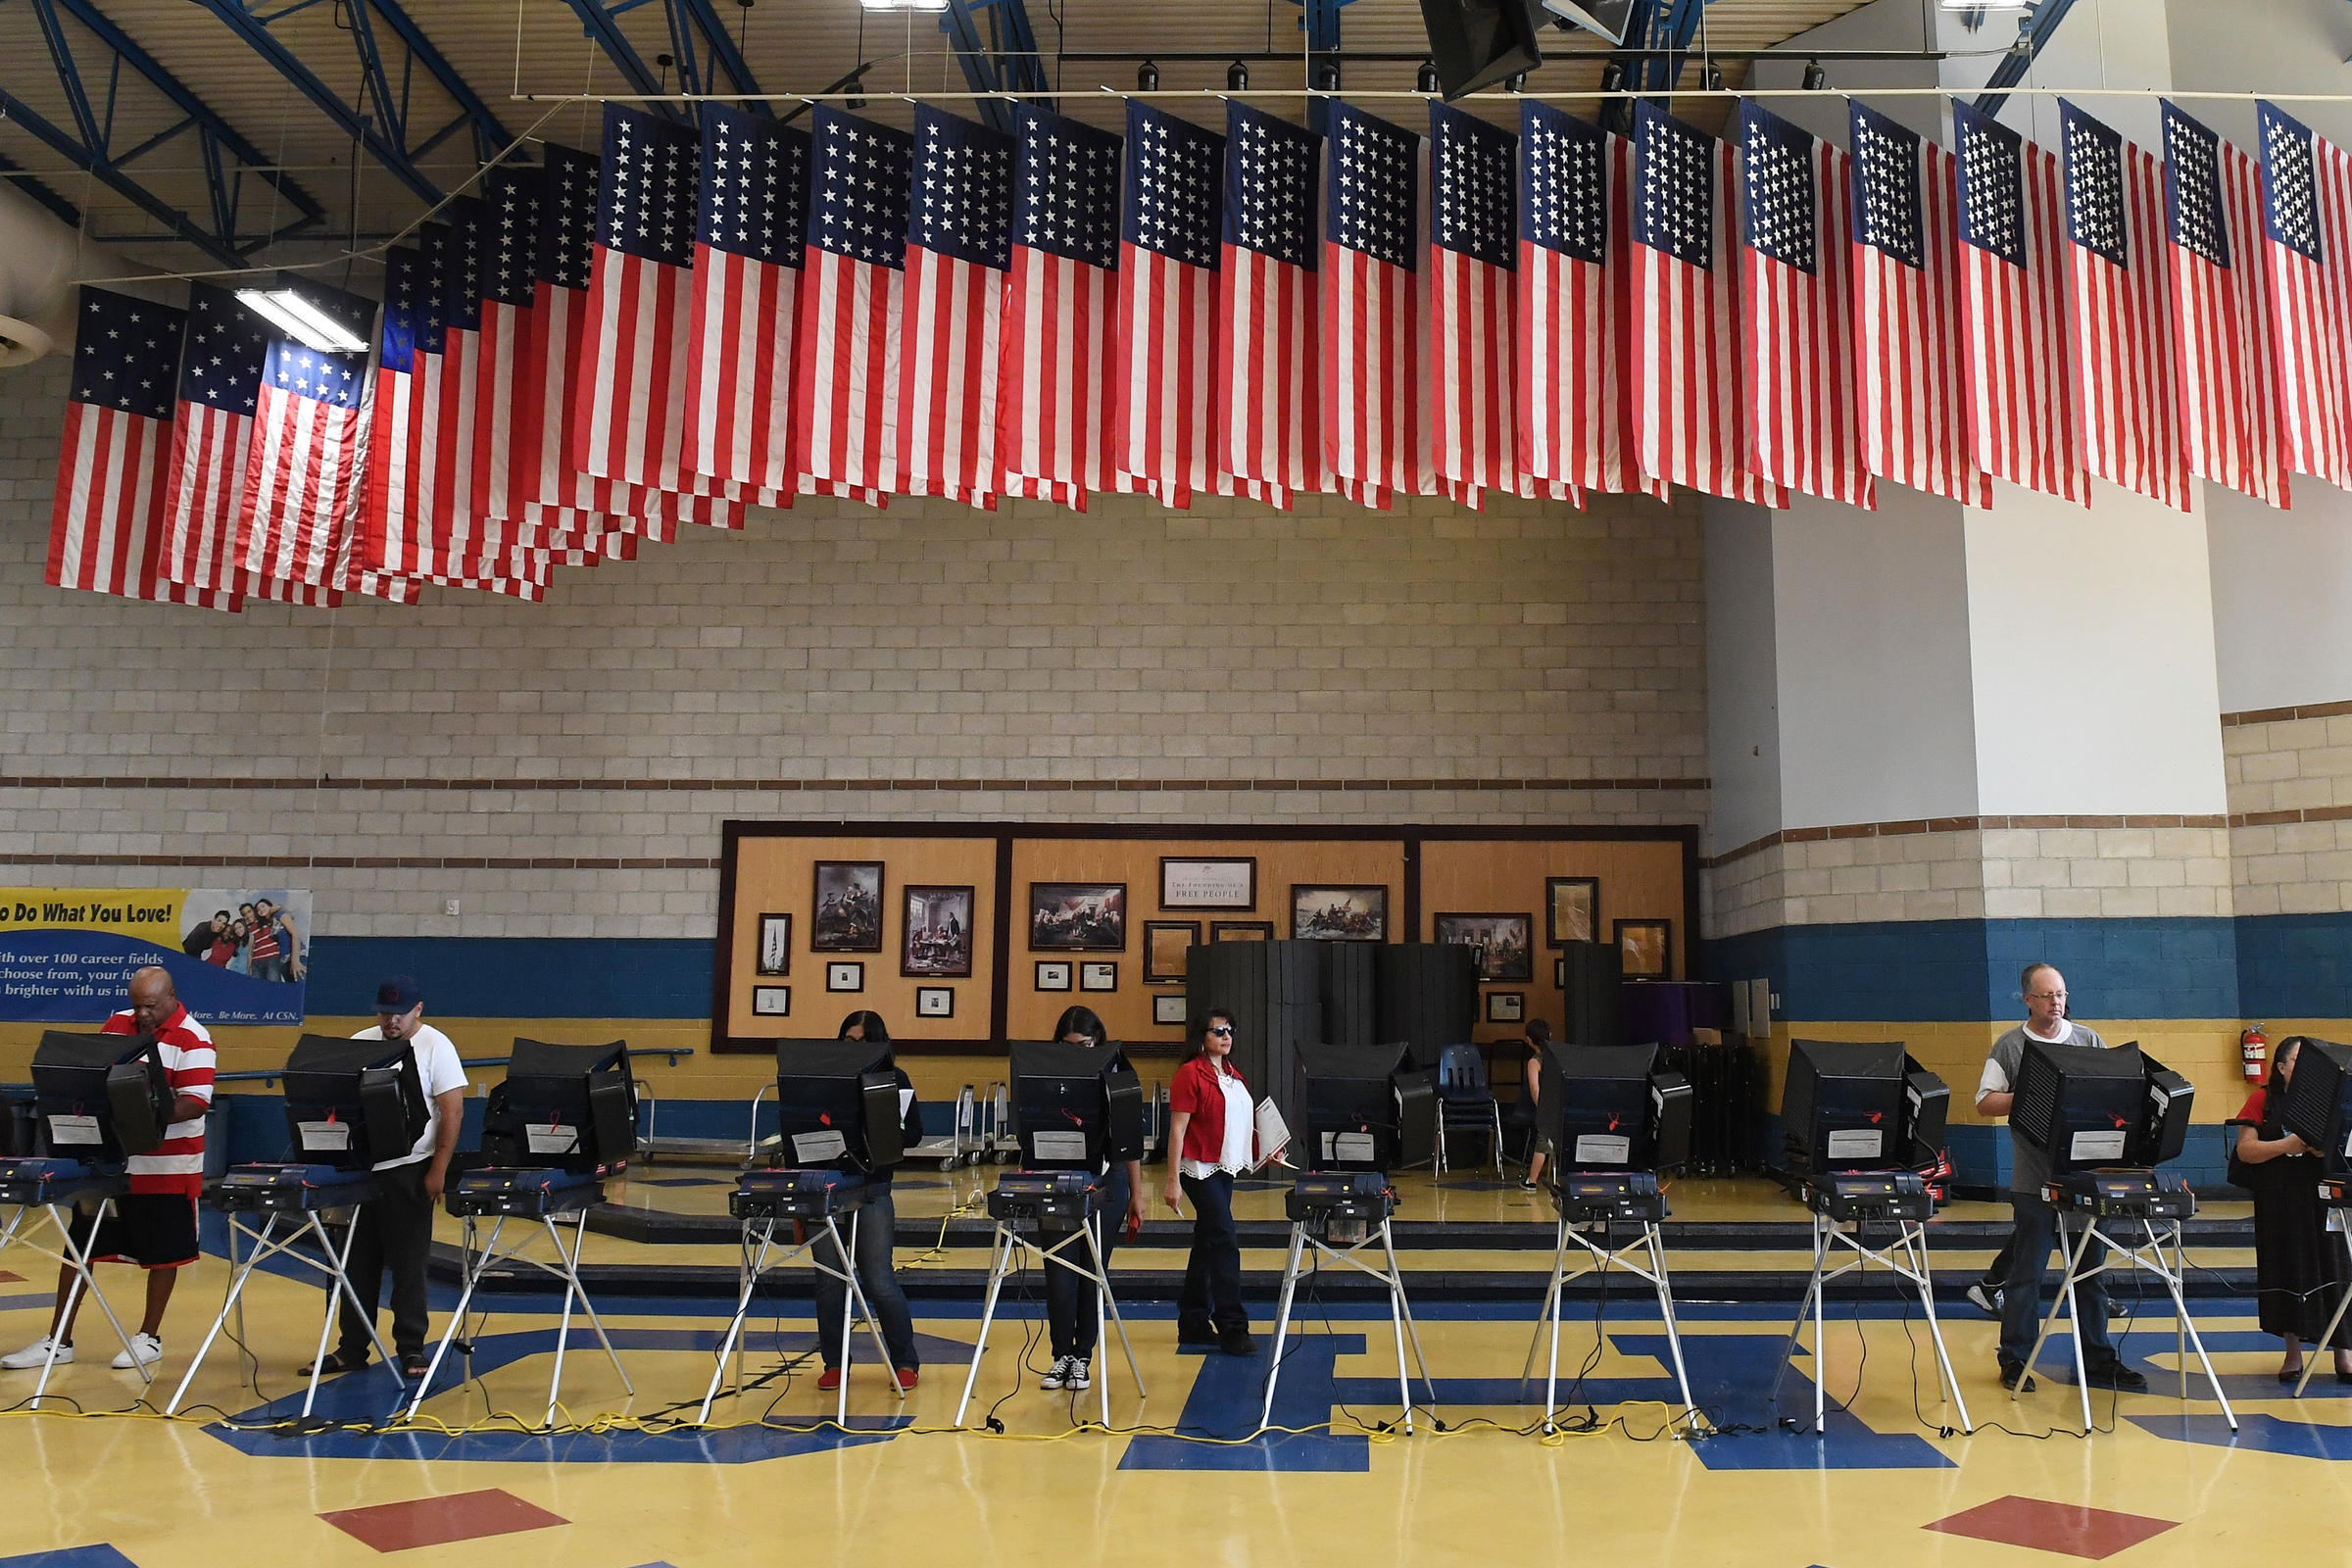 Voters Cast Ballots At Voting Machines In North Las Vegas On Election Day 2016 The Newly Released Mueller Report Detailed More About Russia S Efforts To